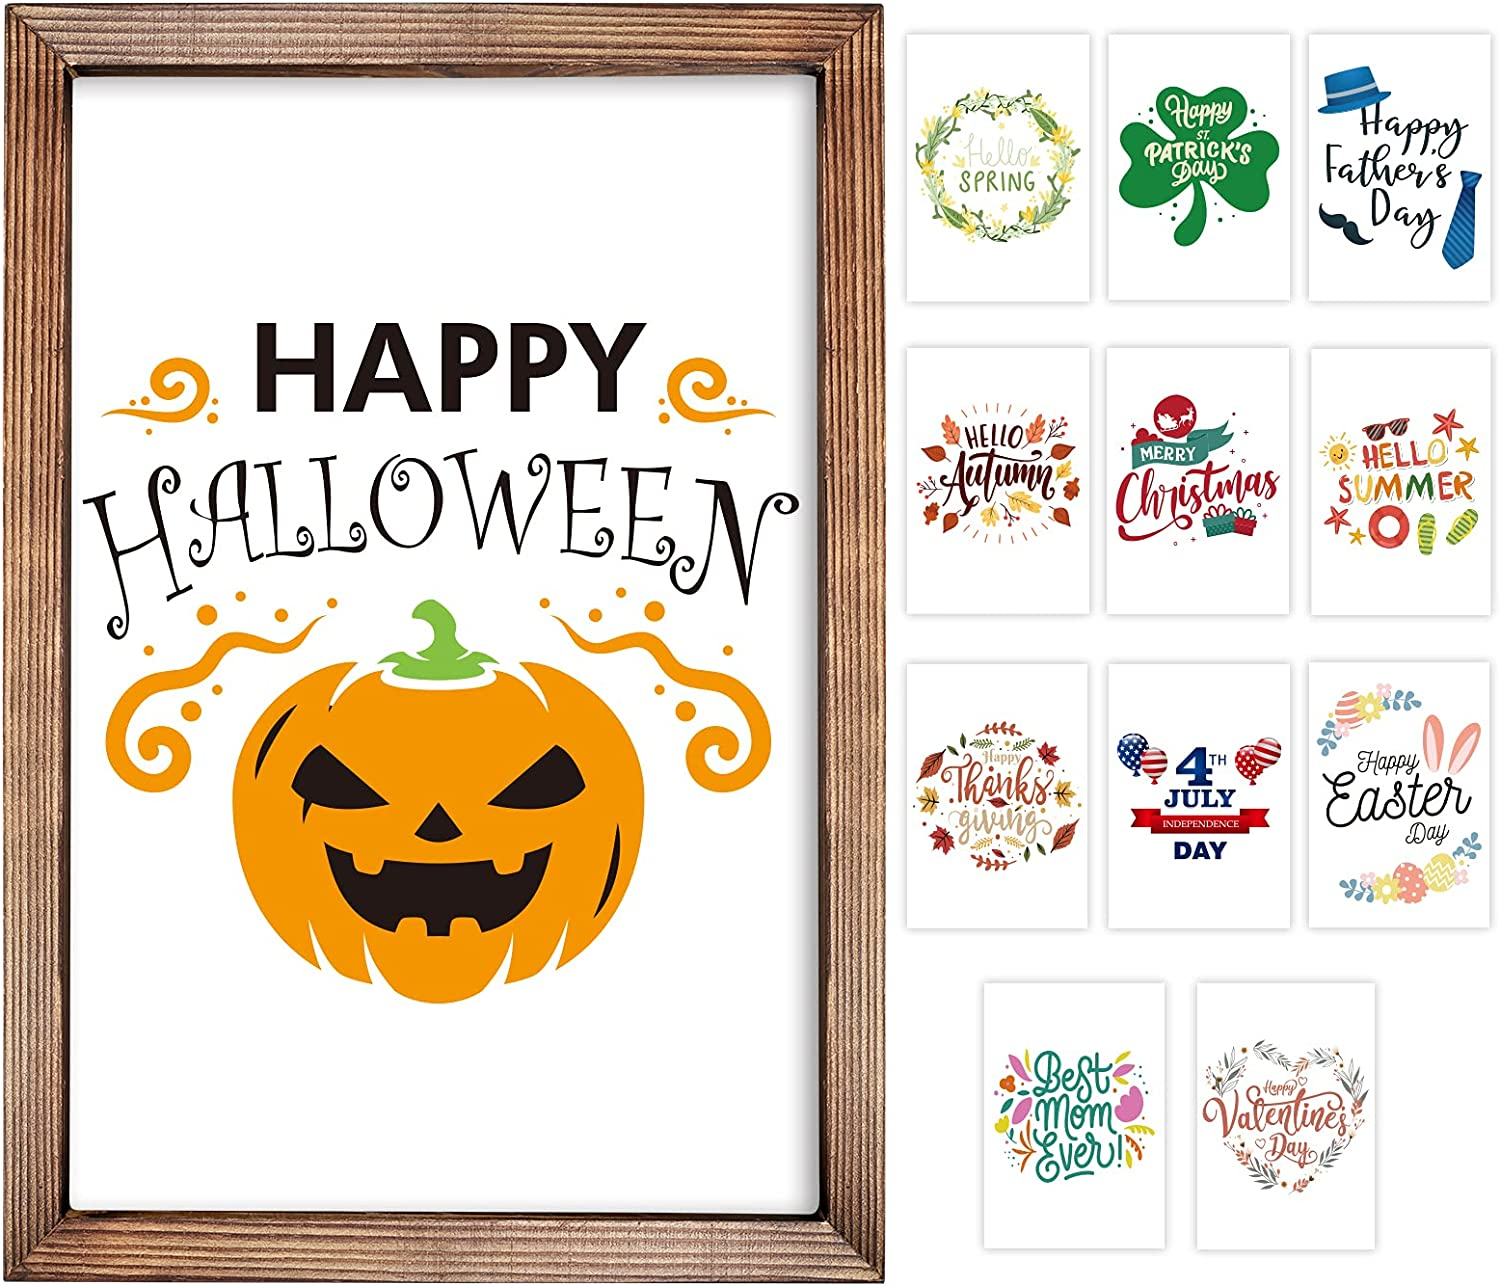 Farmhouse Wall Decor Sign with 12 Interchangeable Seasonal Sayings for Home Decor, Rustic Wood Picture Frame Gifts Home Living Room Decorations for Holiday Halloween Thanksgiving Christmas 11x16 Inch